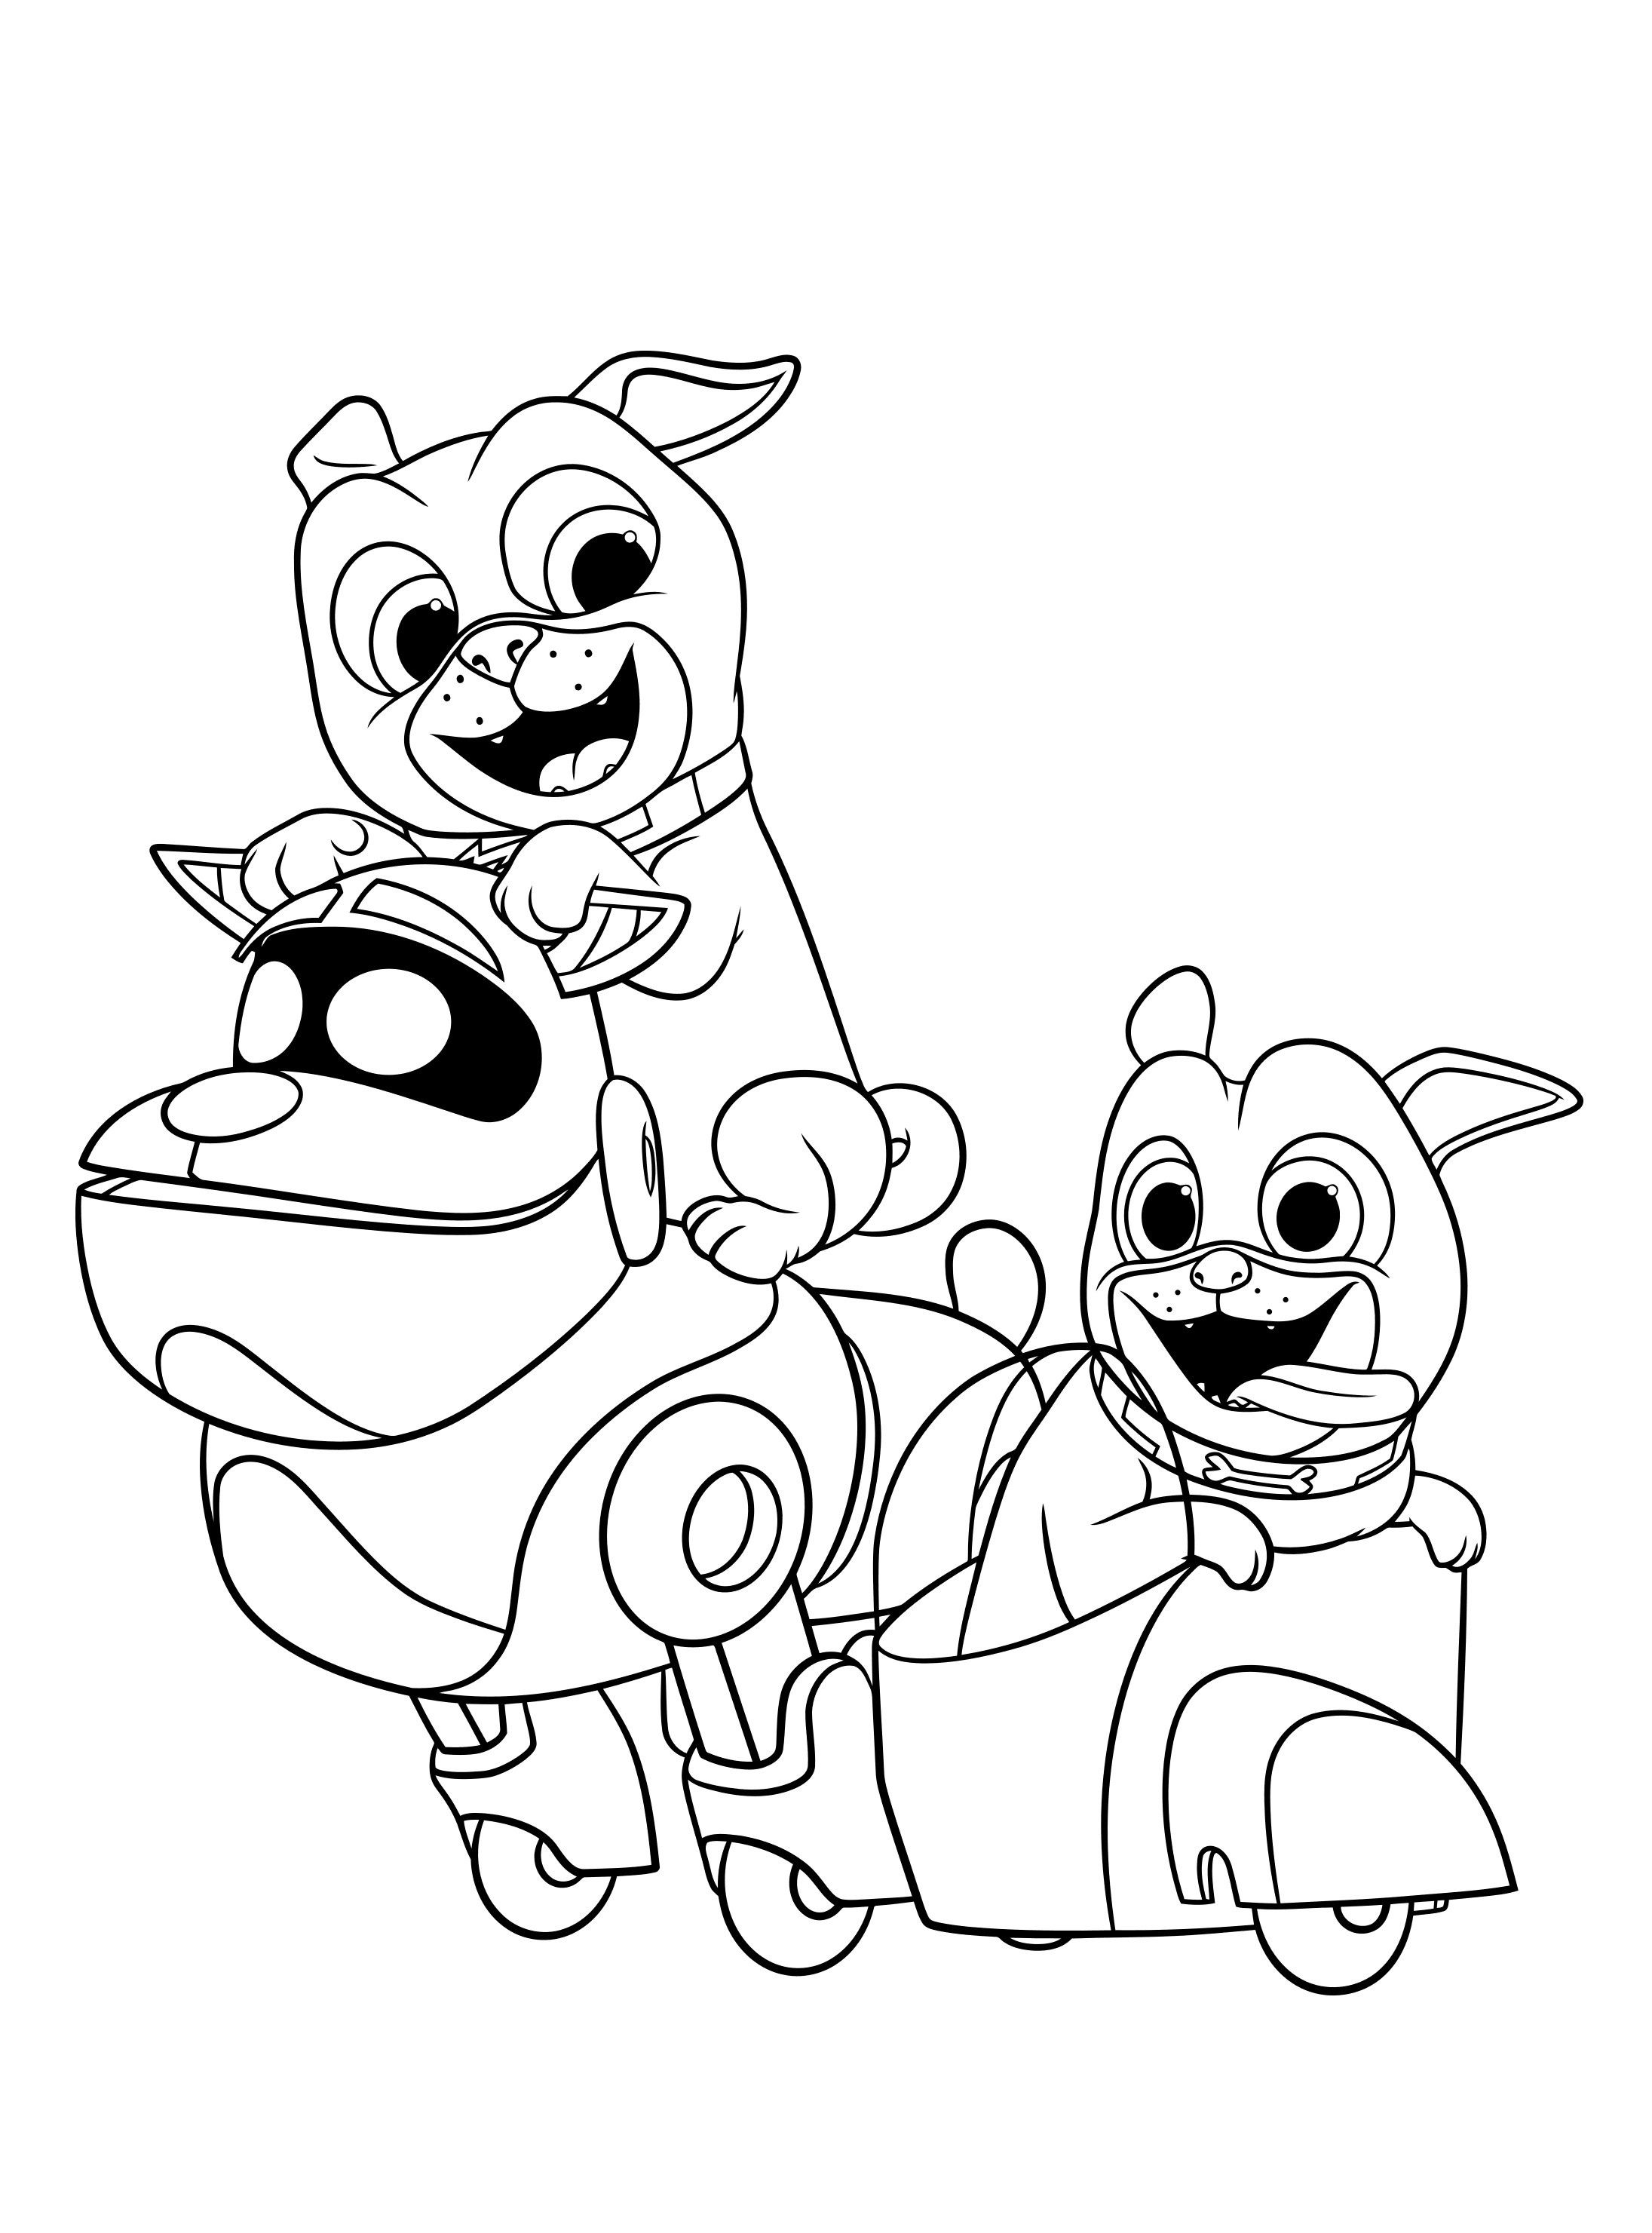 coloring sheet dog dog coloring pages for kids print them online for free dog sheet coloring